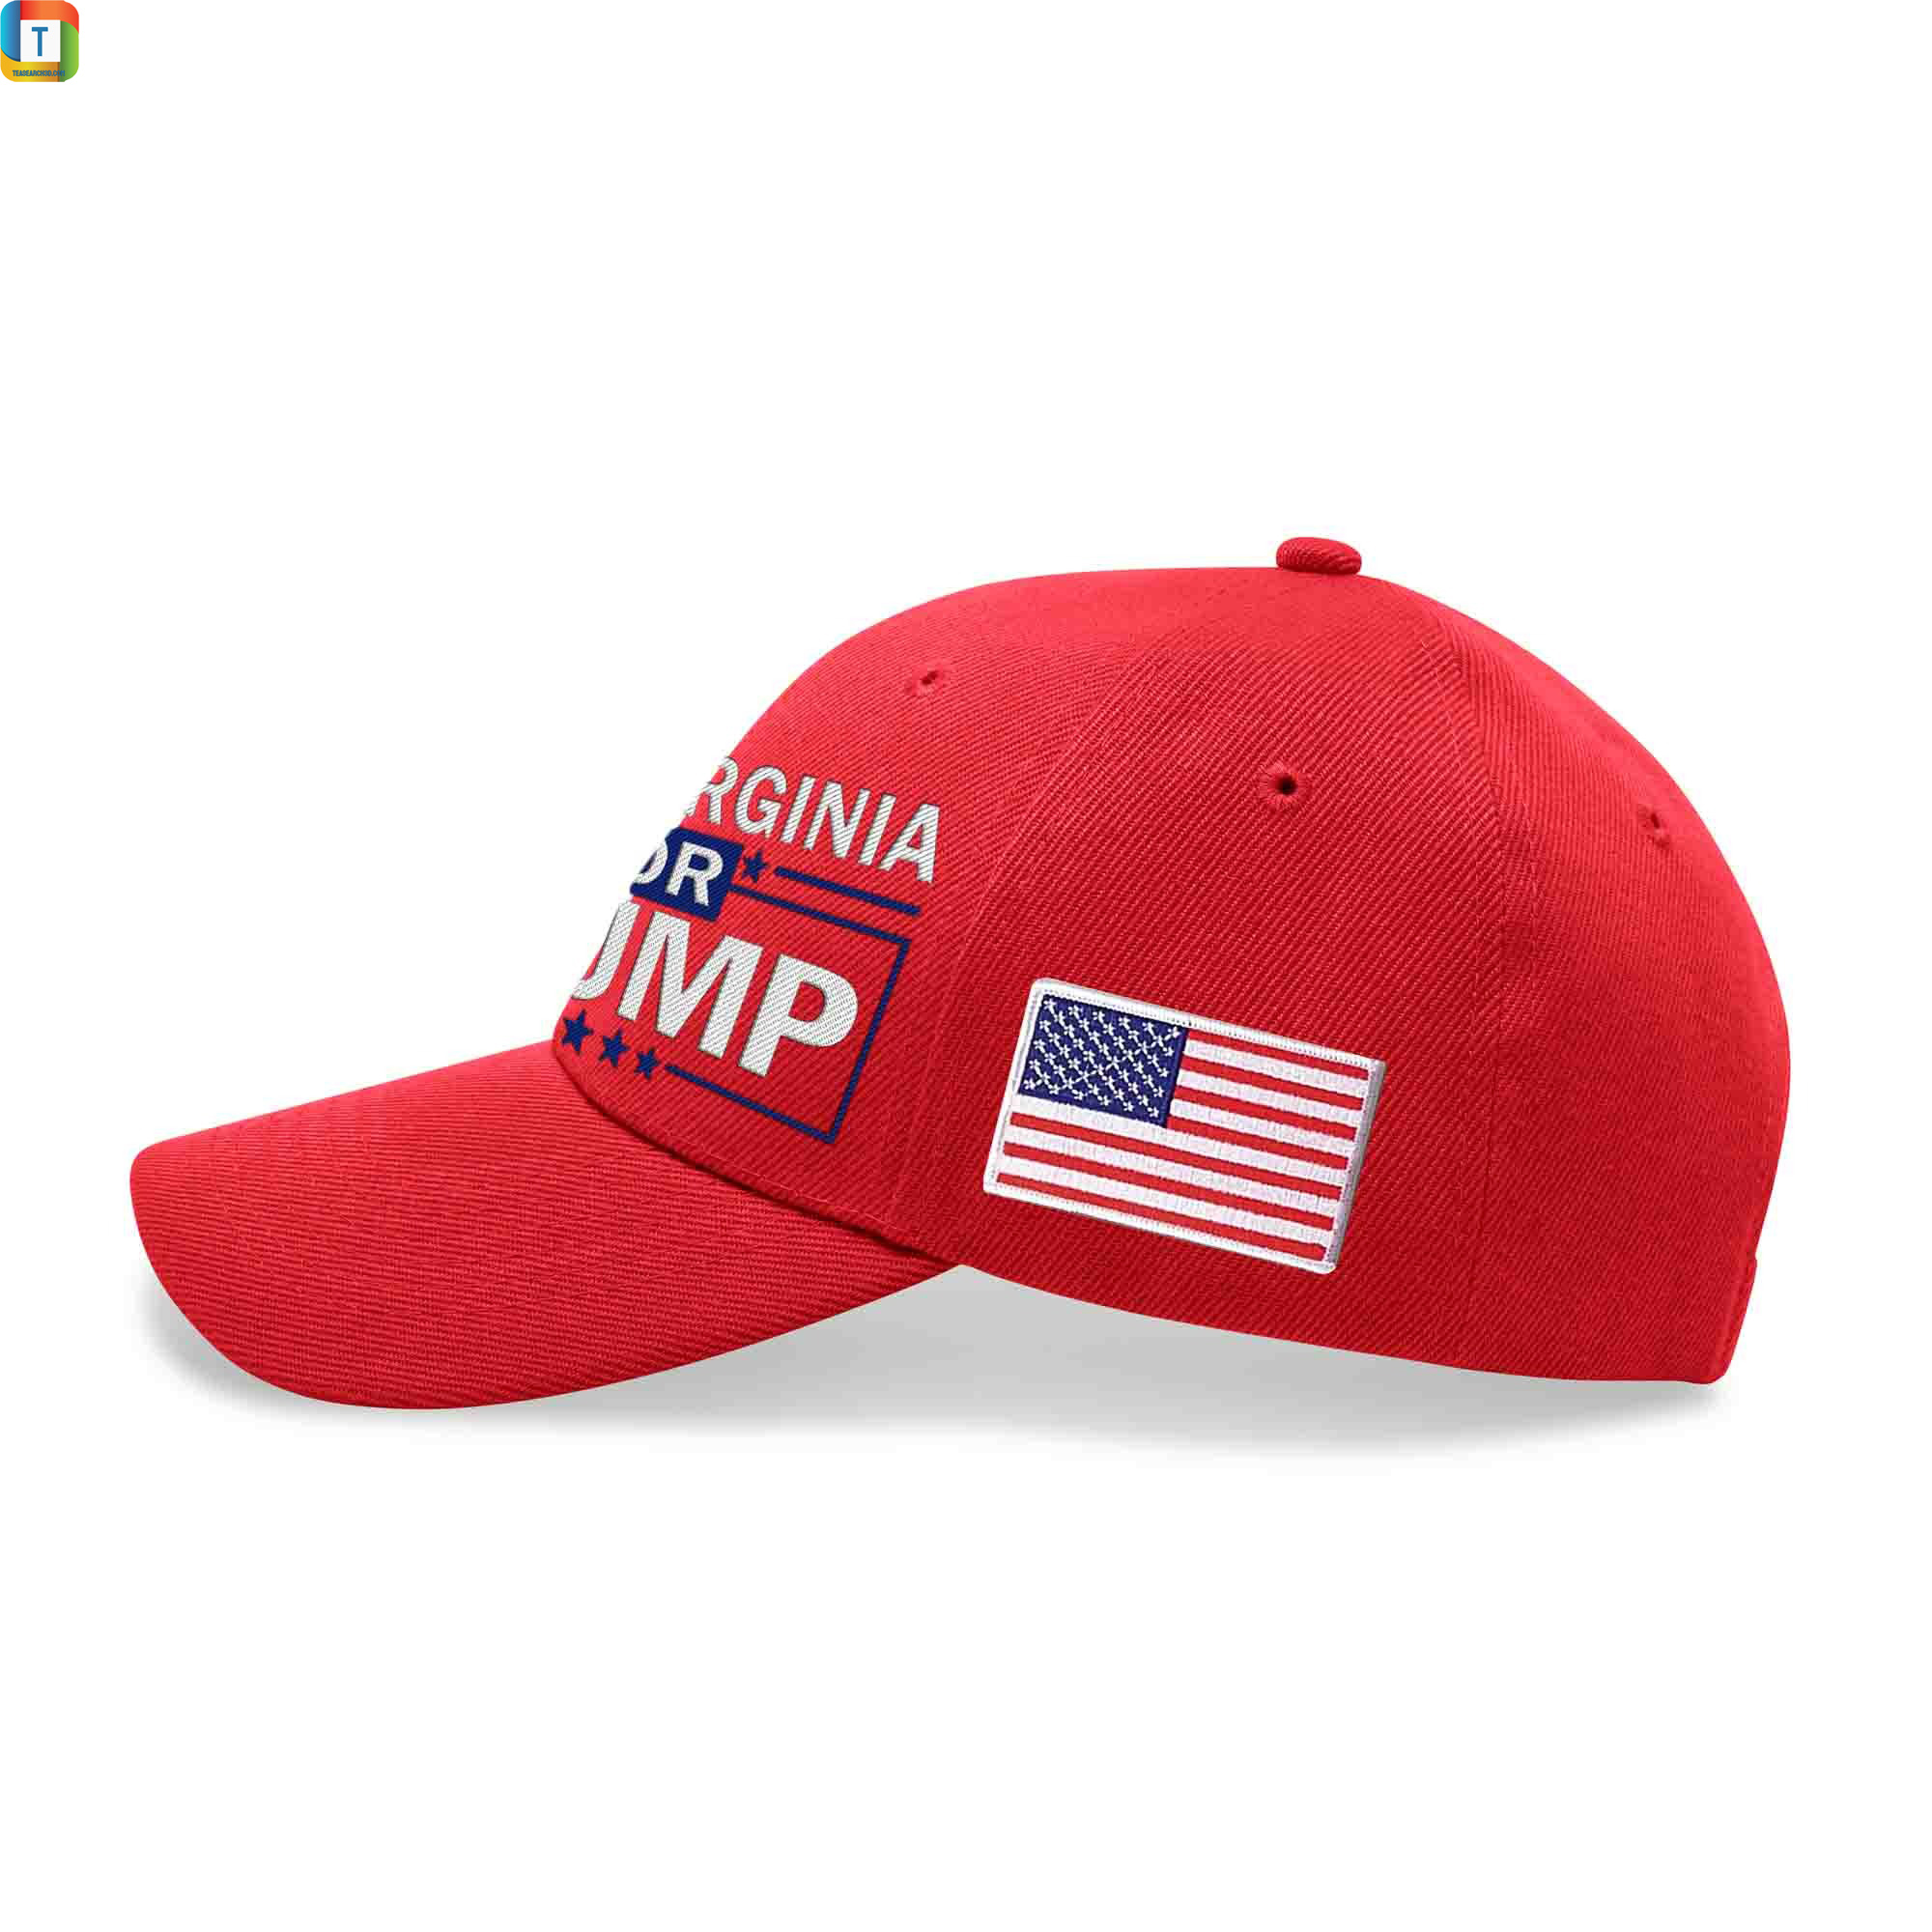 West Virginia For Trump Embroidered Hat 1